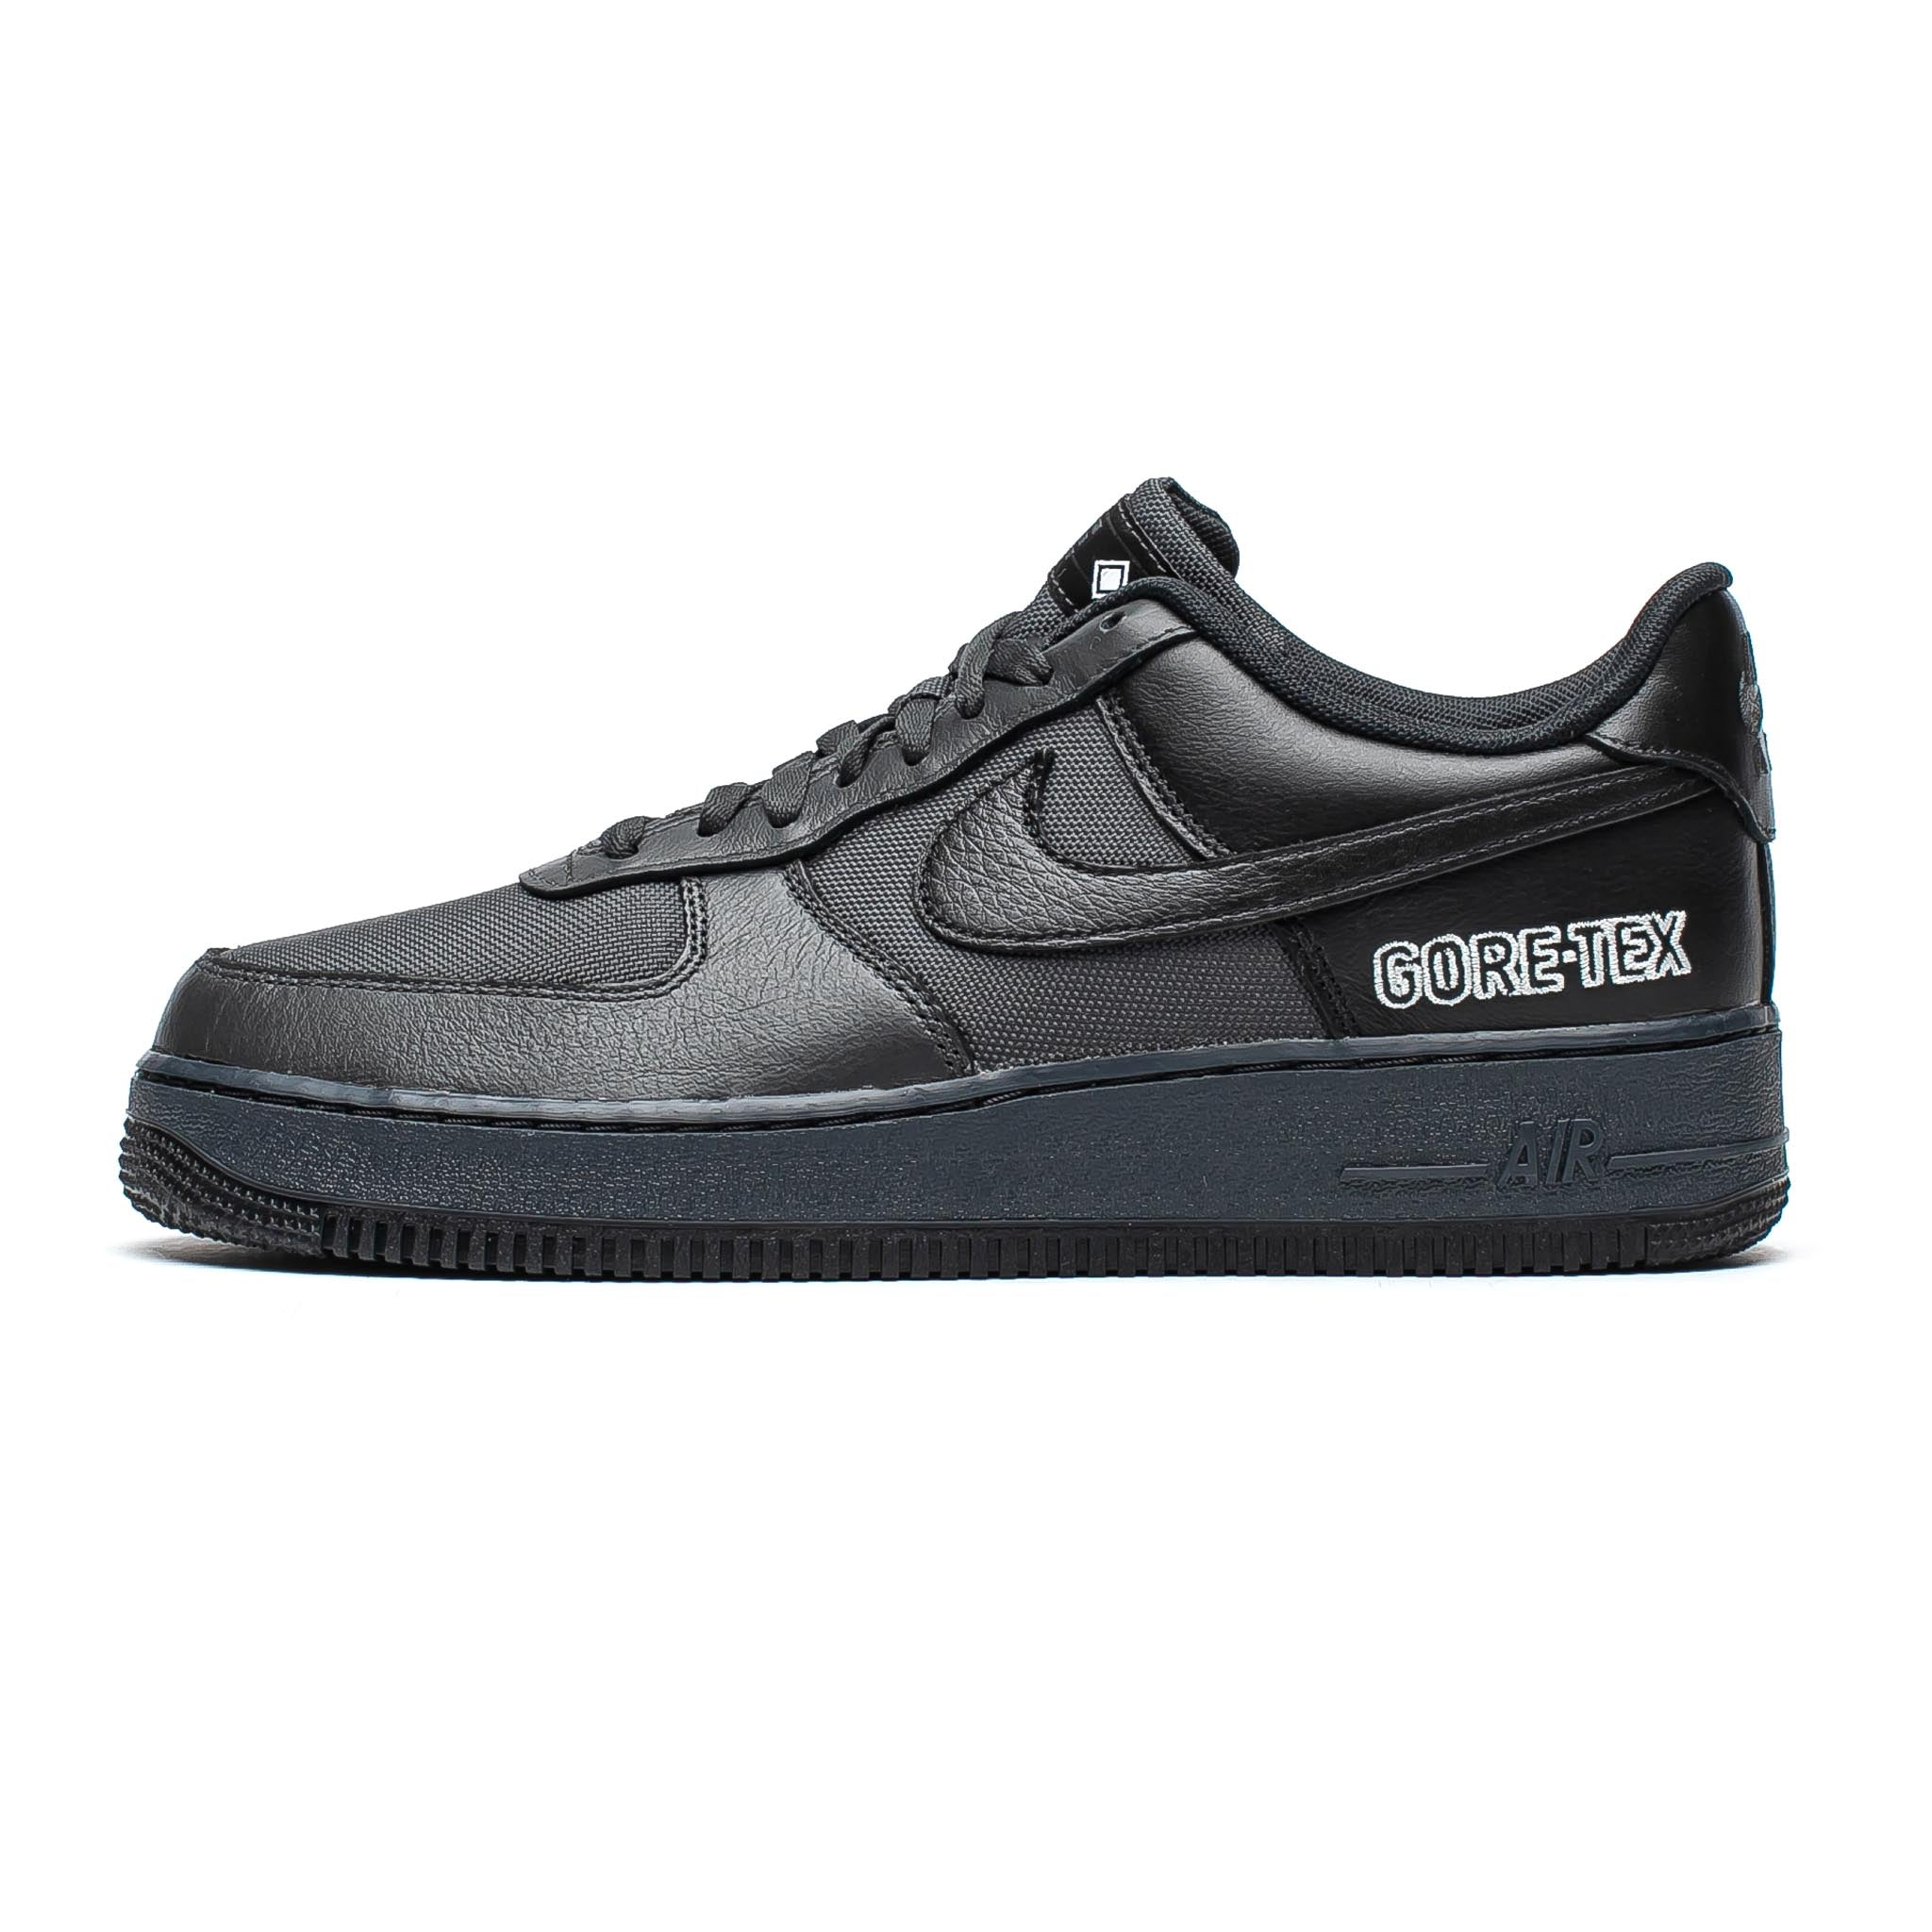 Nike Air Force 1 Low 'GORE-TEX' Black/Anthracite